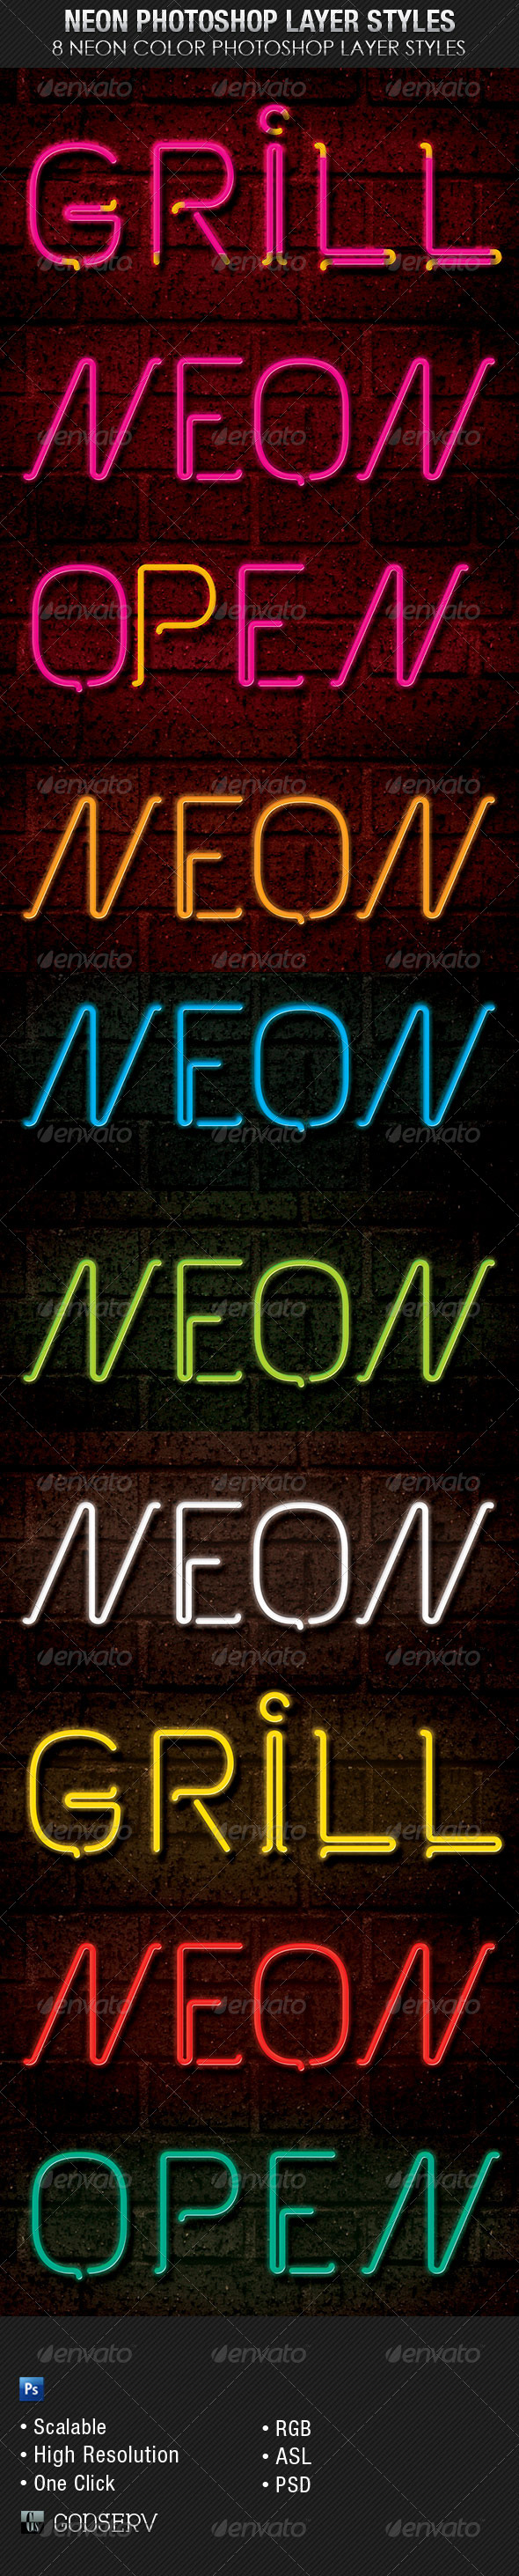 GraphicRiver Neon Photoshop Layer Styles 7883066